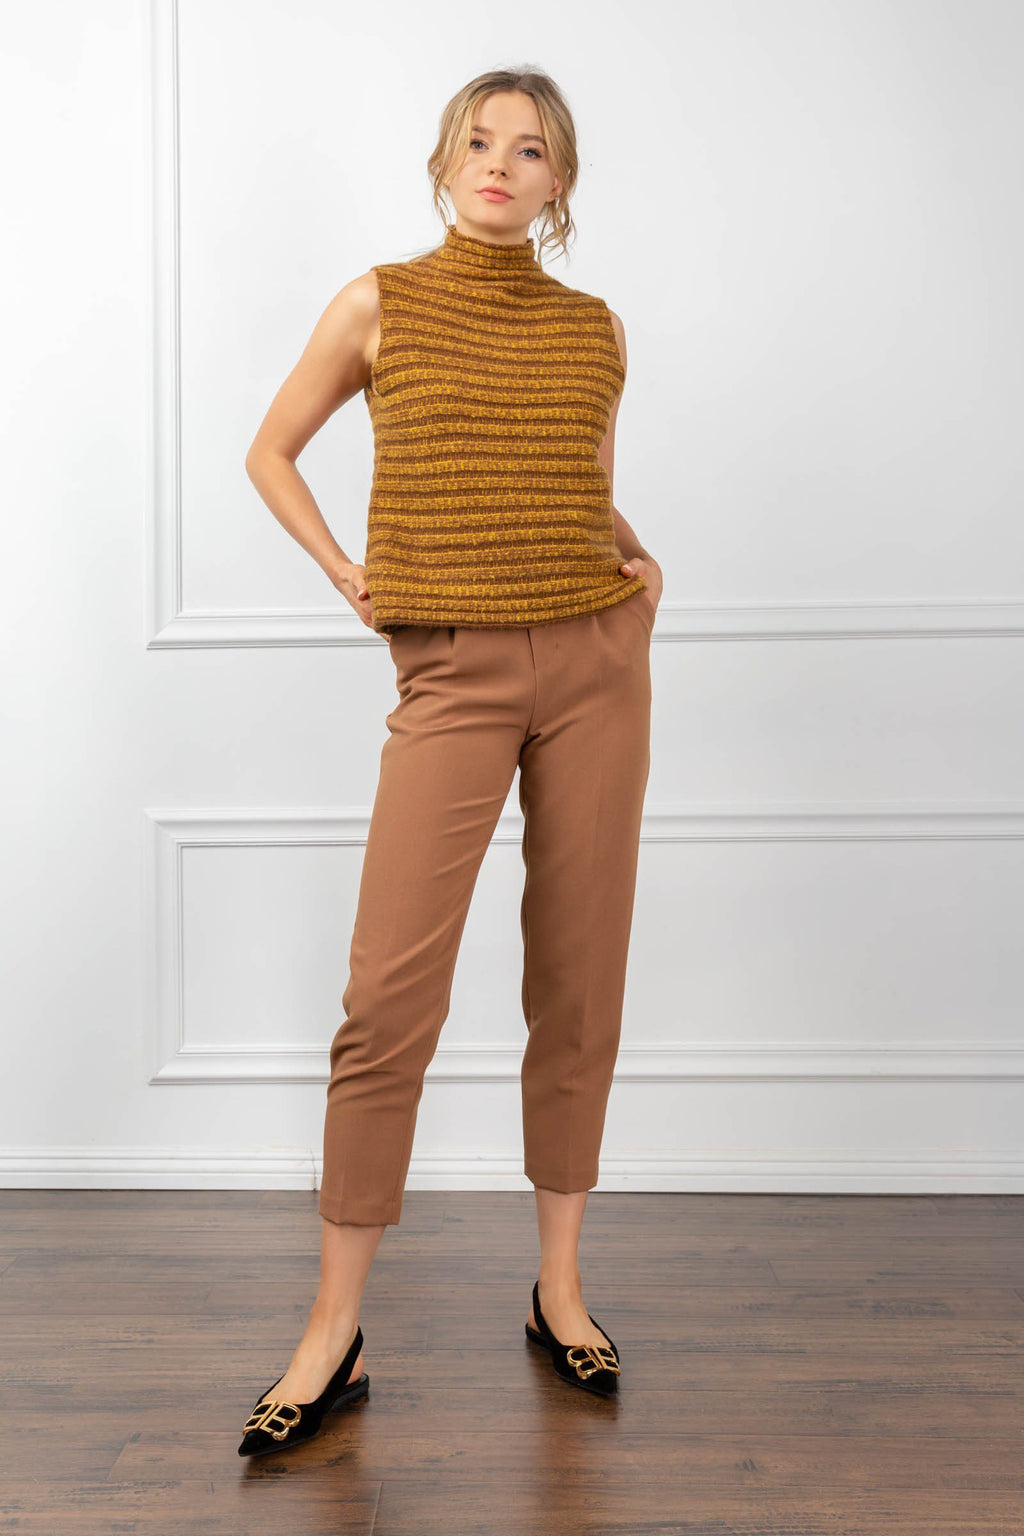 Amanda Sweater Yellow in Tops by J.ING - an L.A based women's fashion line